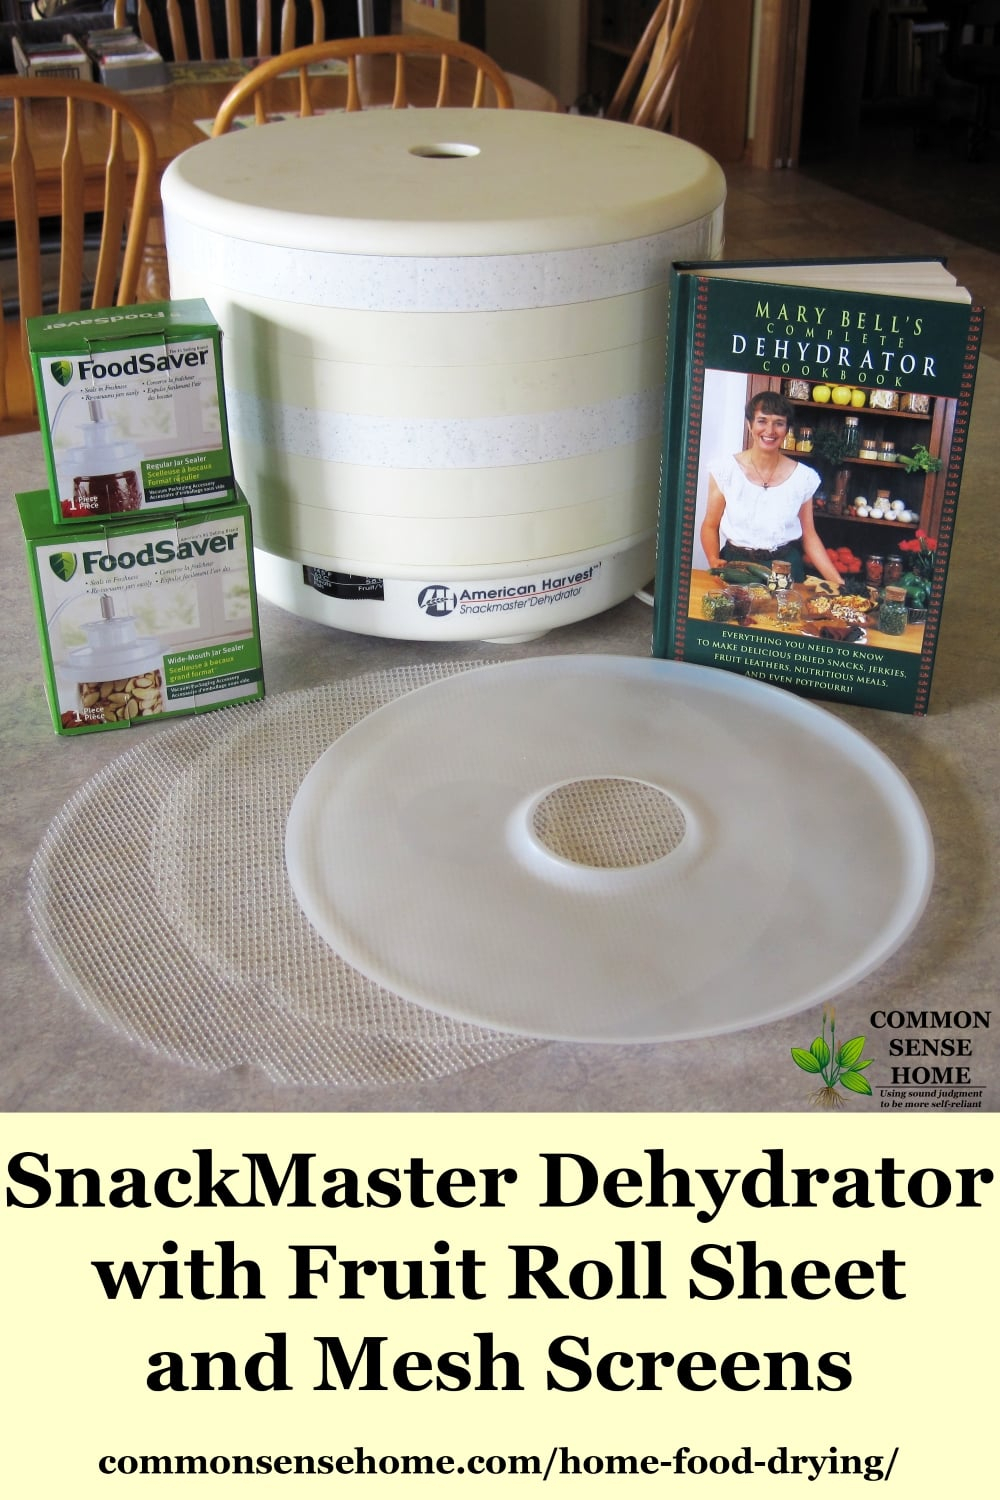 Snackmaster dehydrator on a table with accesories next to it